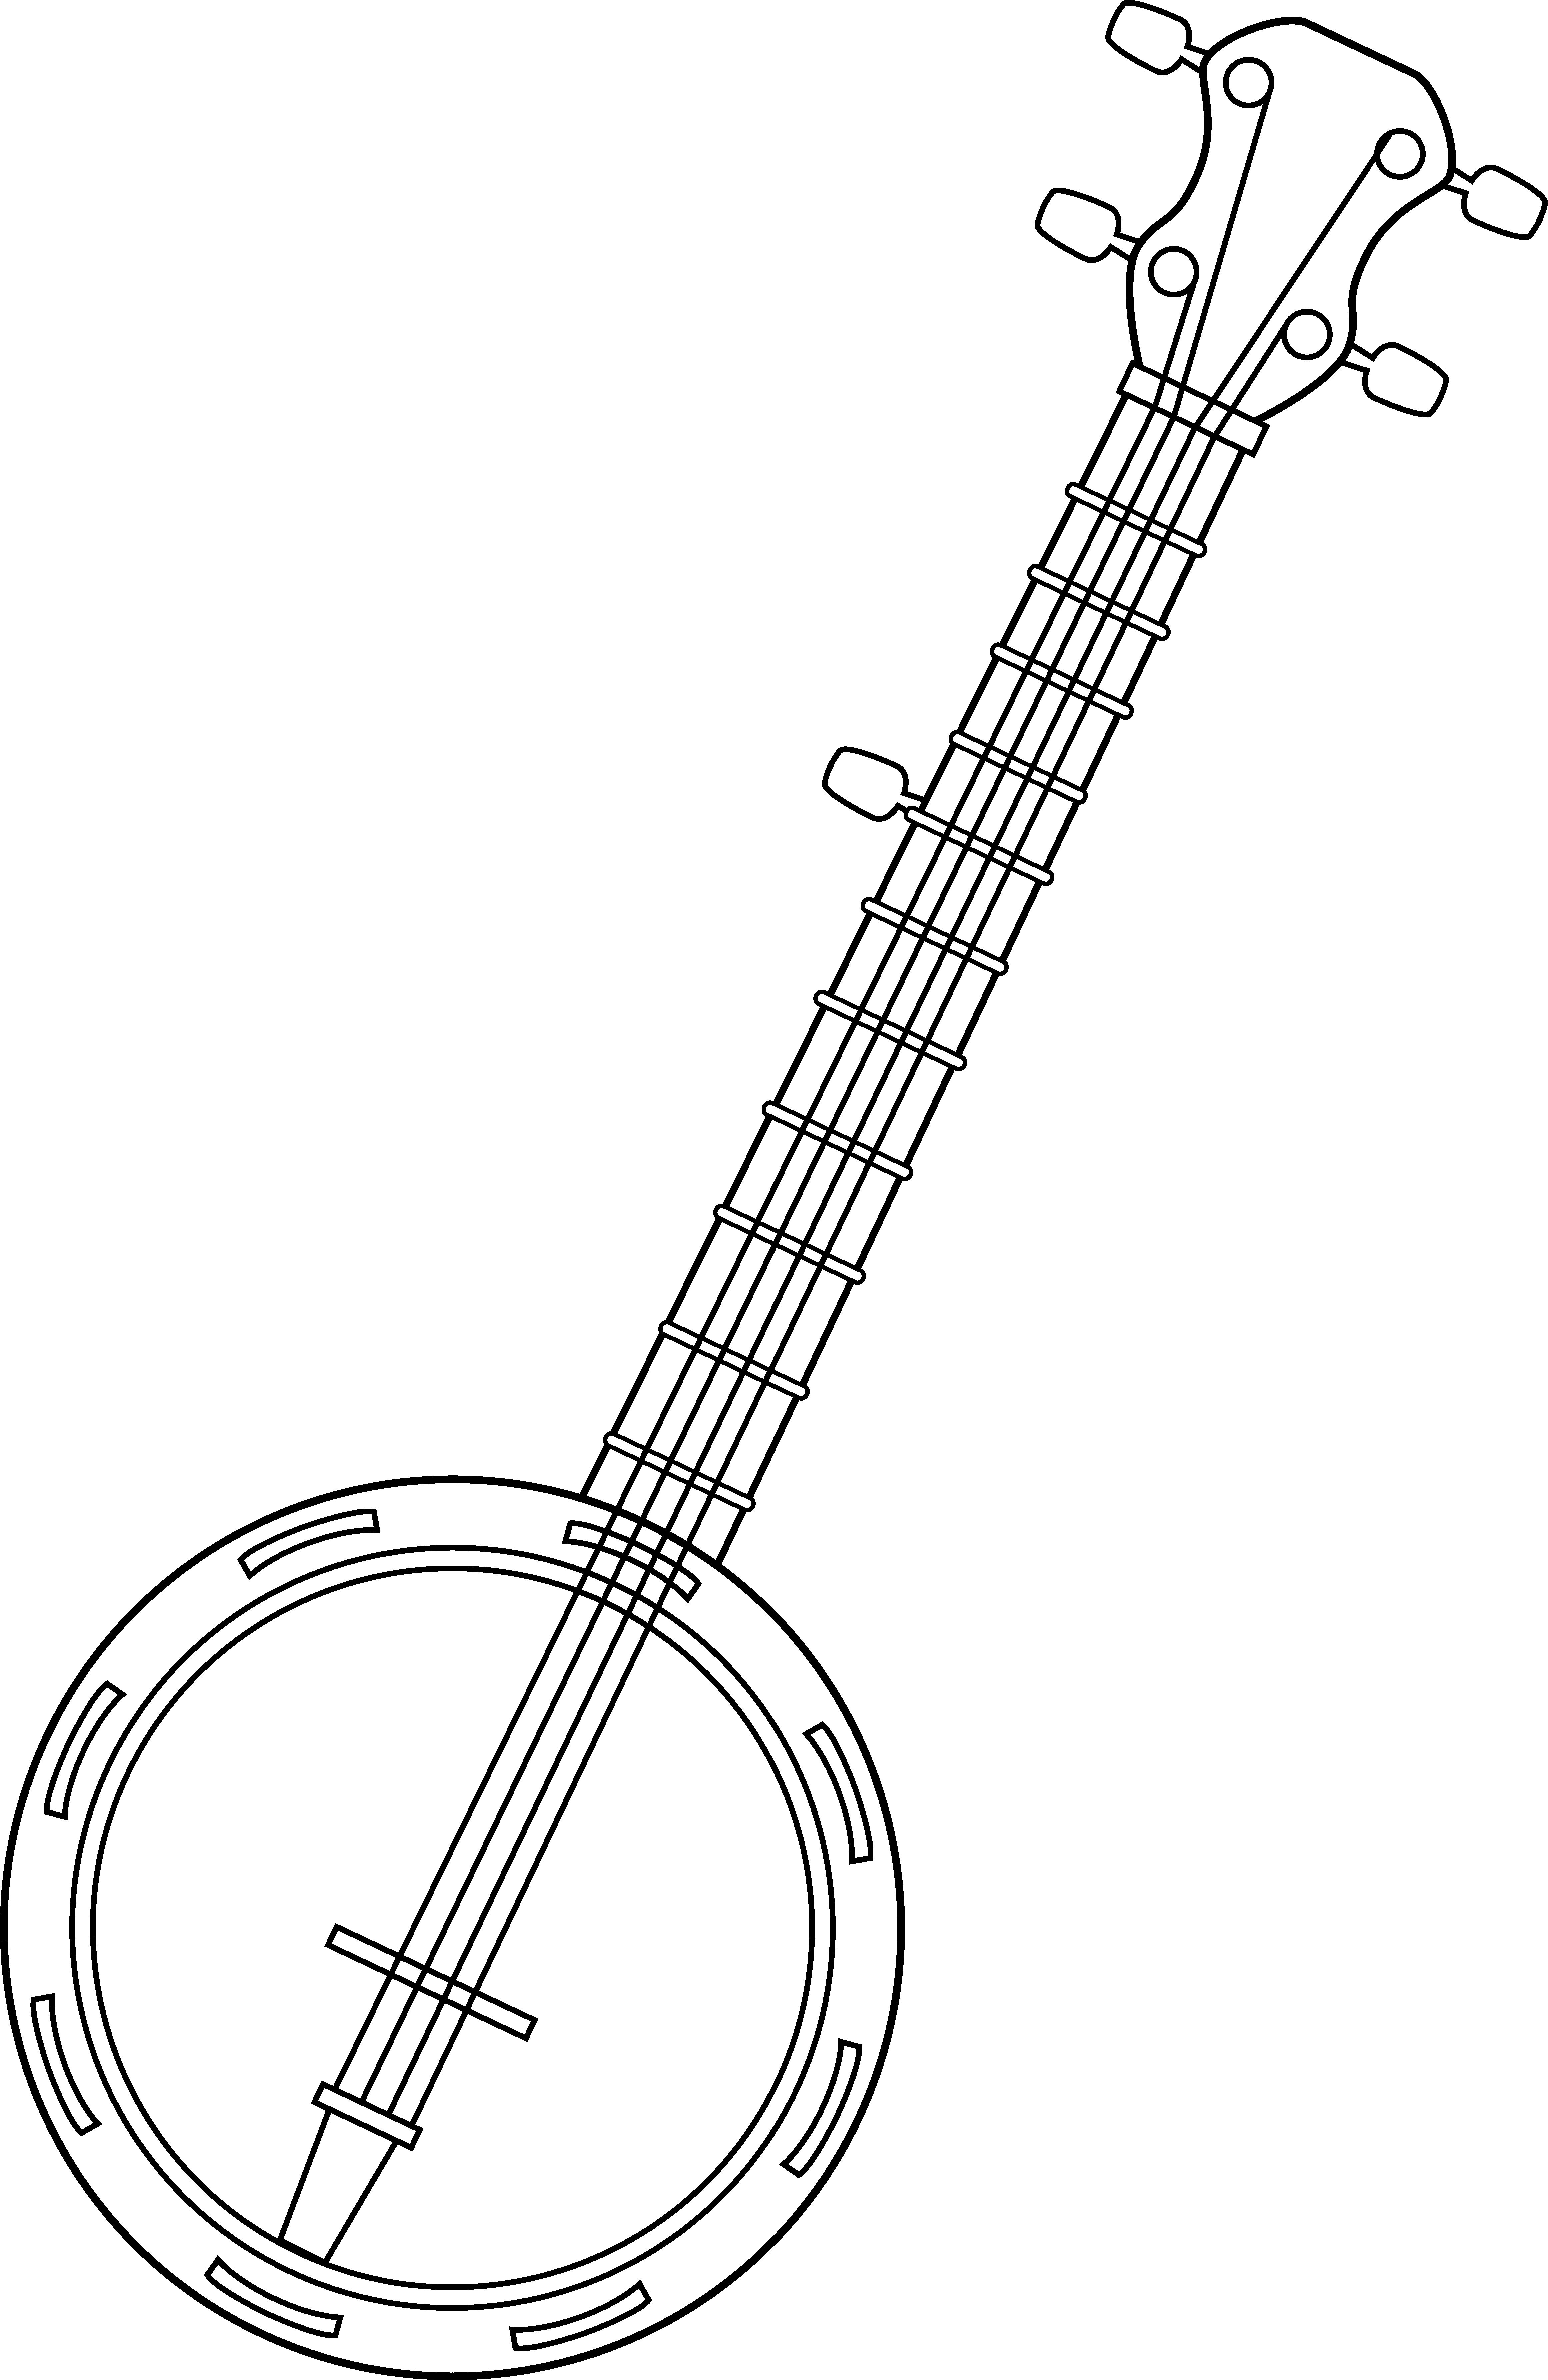 fiddle drawing colouring